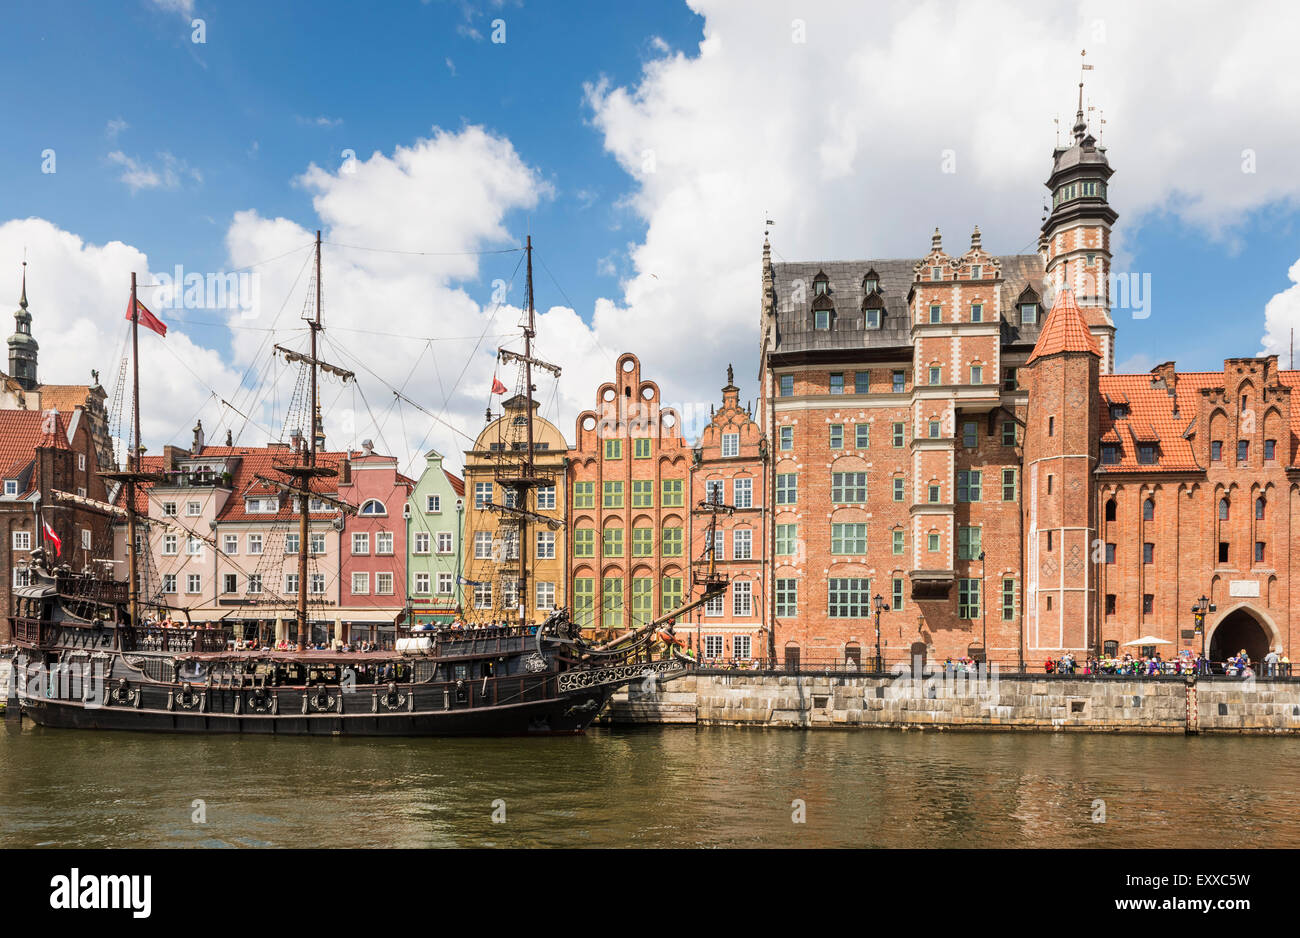 Historic sailing ship moored in Gdansk old town or Stare Miasto on the banks of the River Motlawa, Poland, Europe - Stock Image